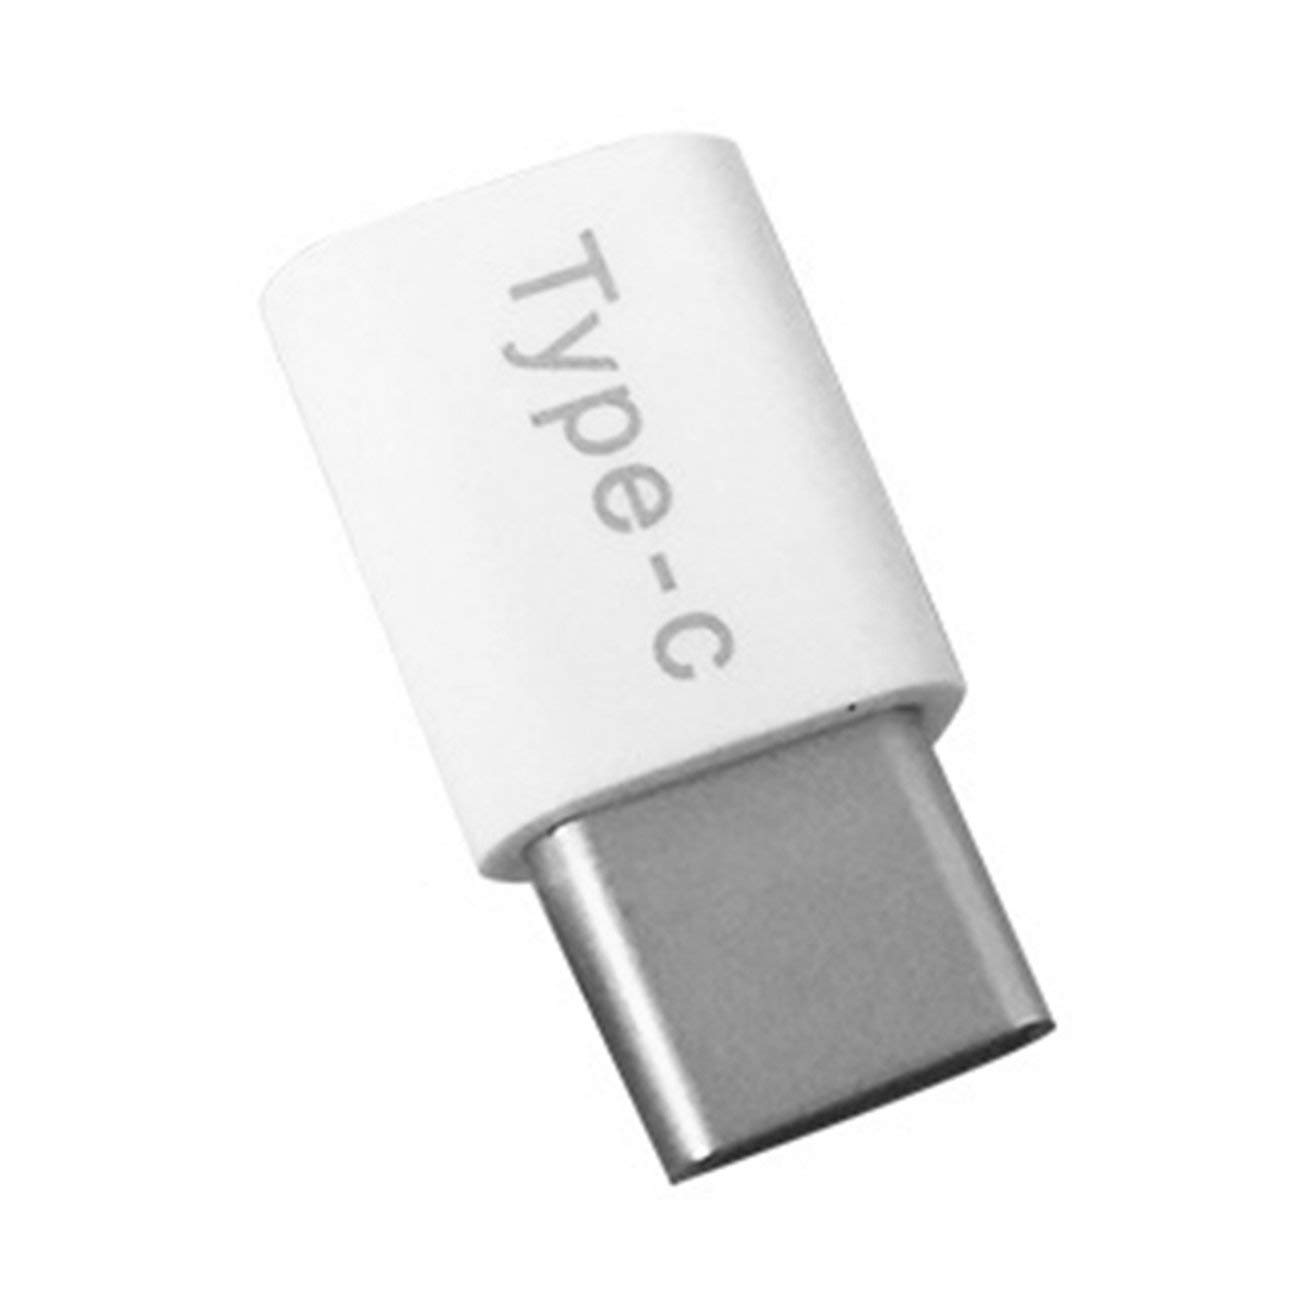 Liobaba Mini Portable Type C to Micro USB Adapter Phone Charging Converter Android Micro USB to Type-C Female to Male Adapter